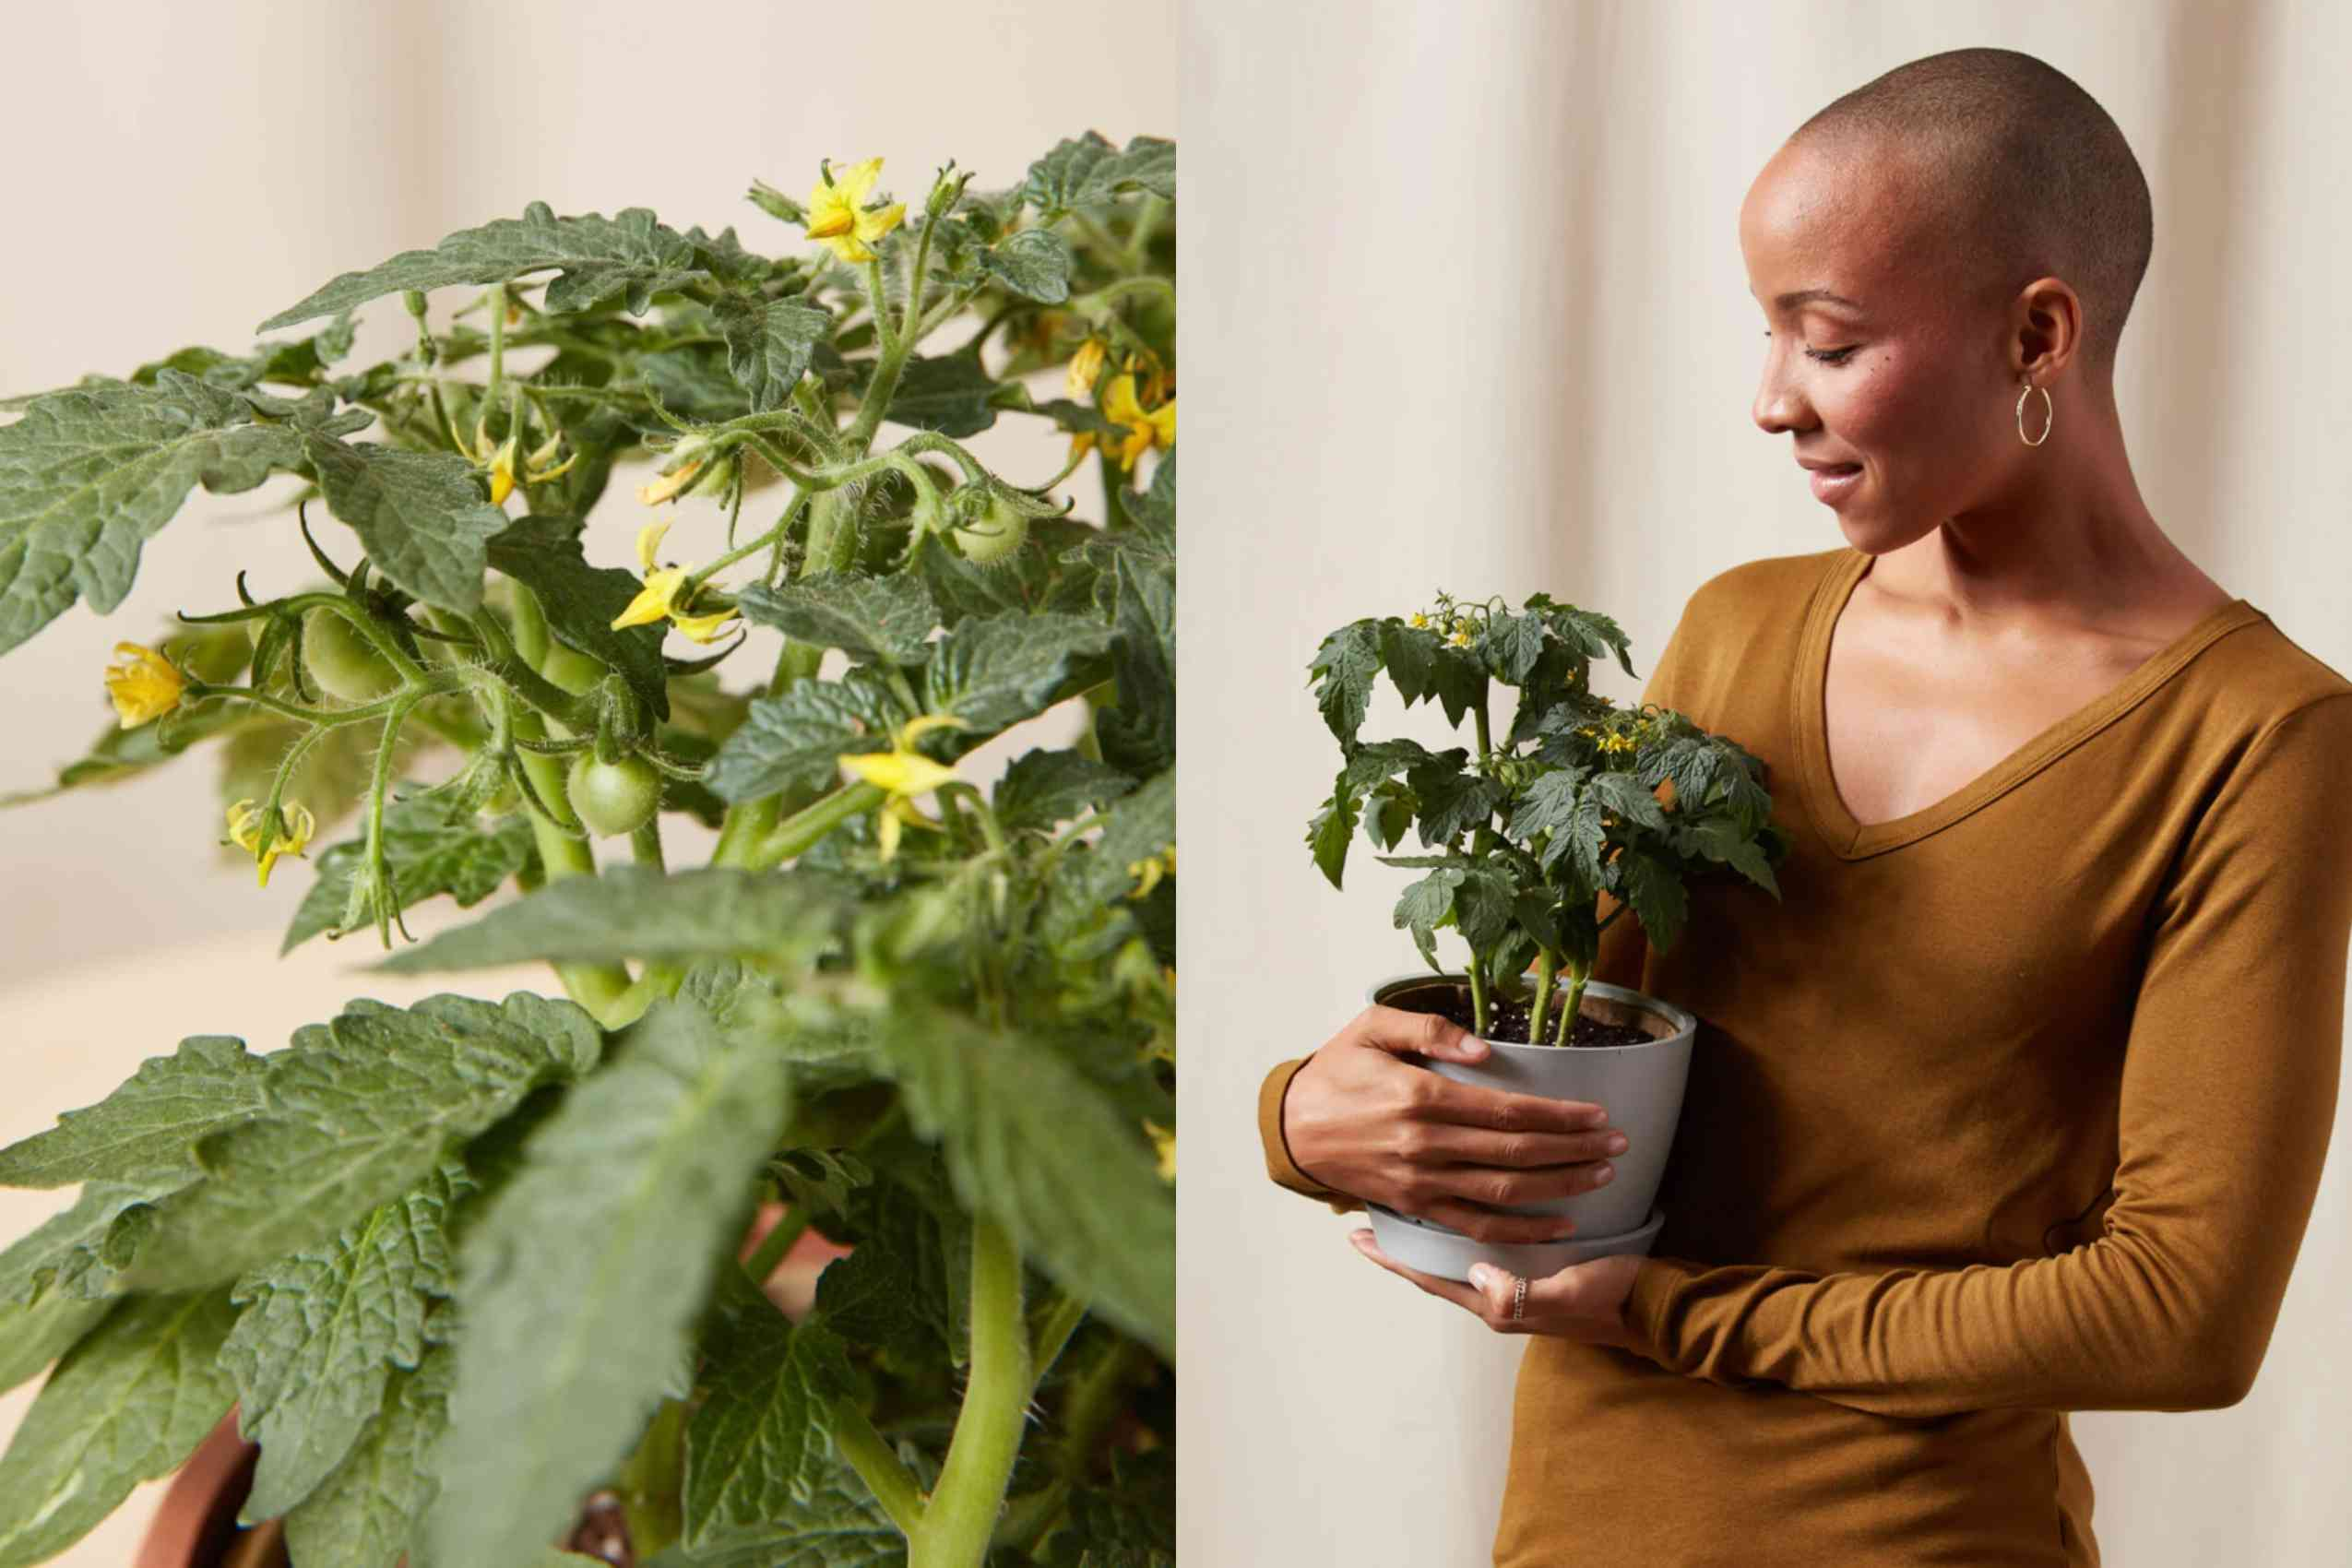 A woman cradles a potted tomato plant in her arms.